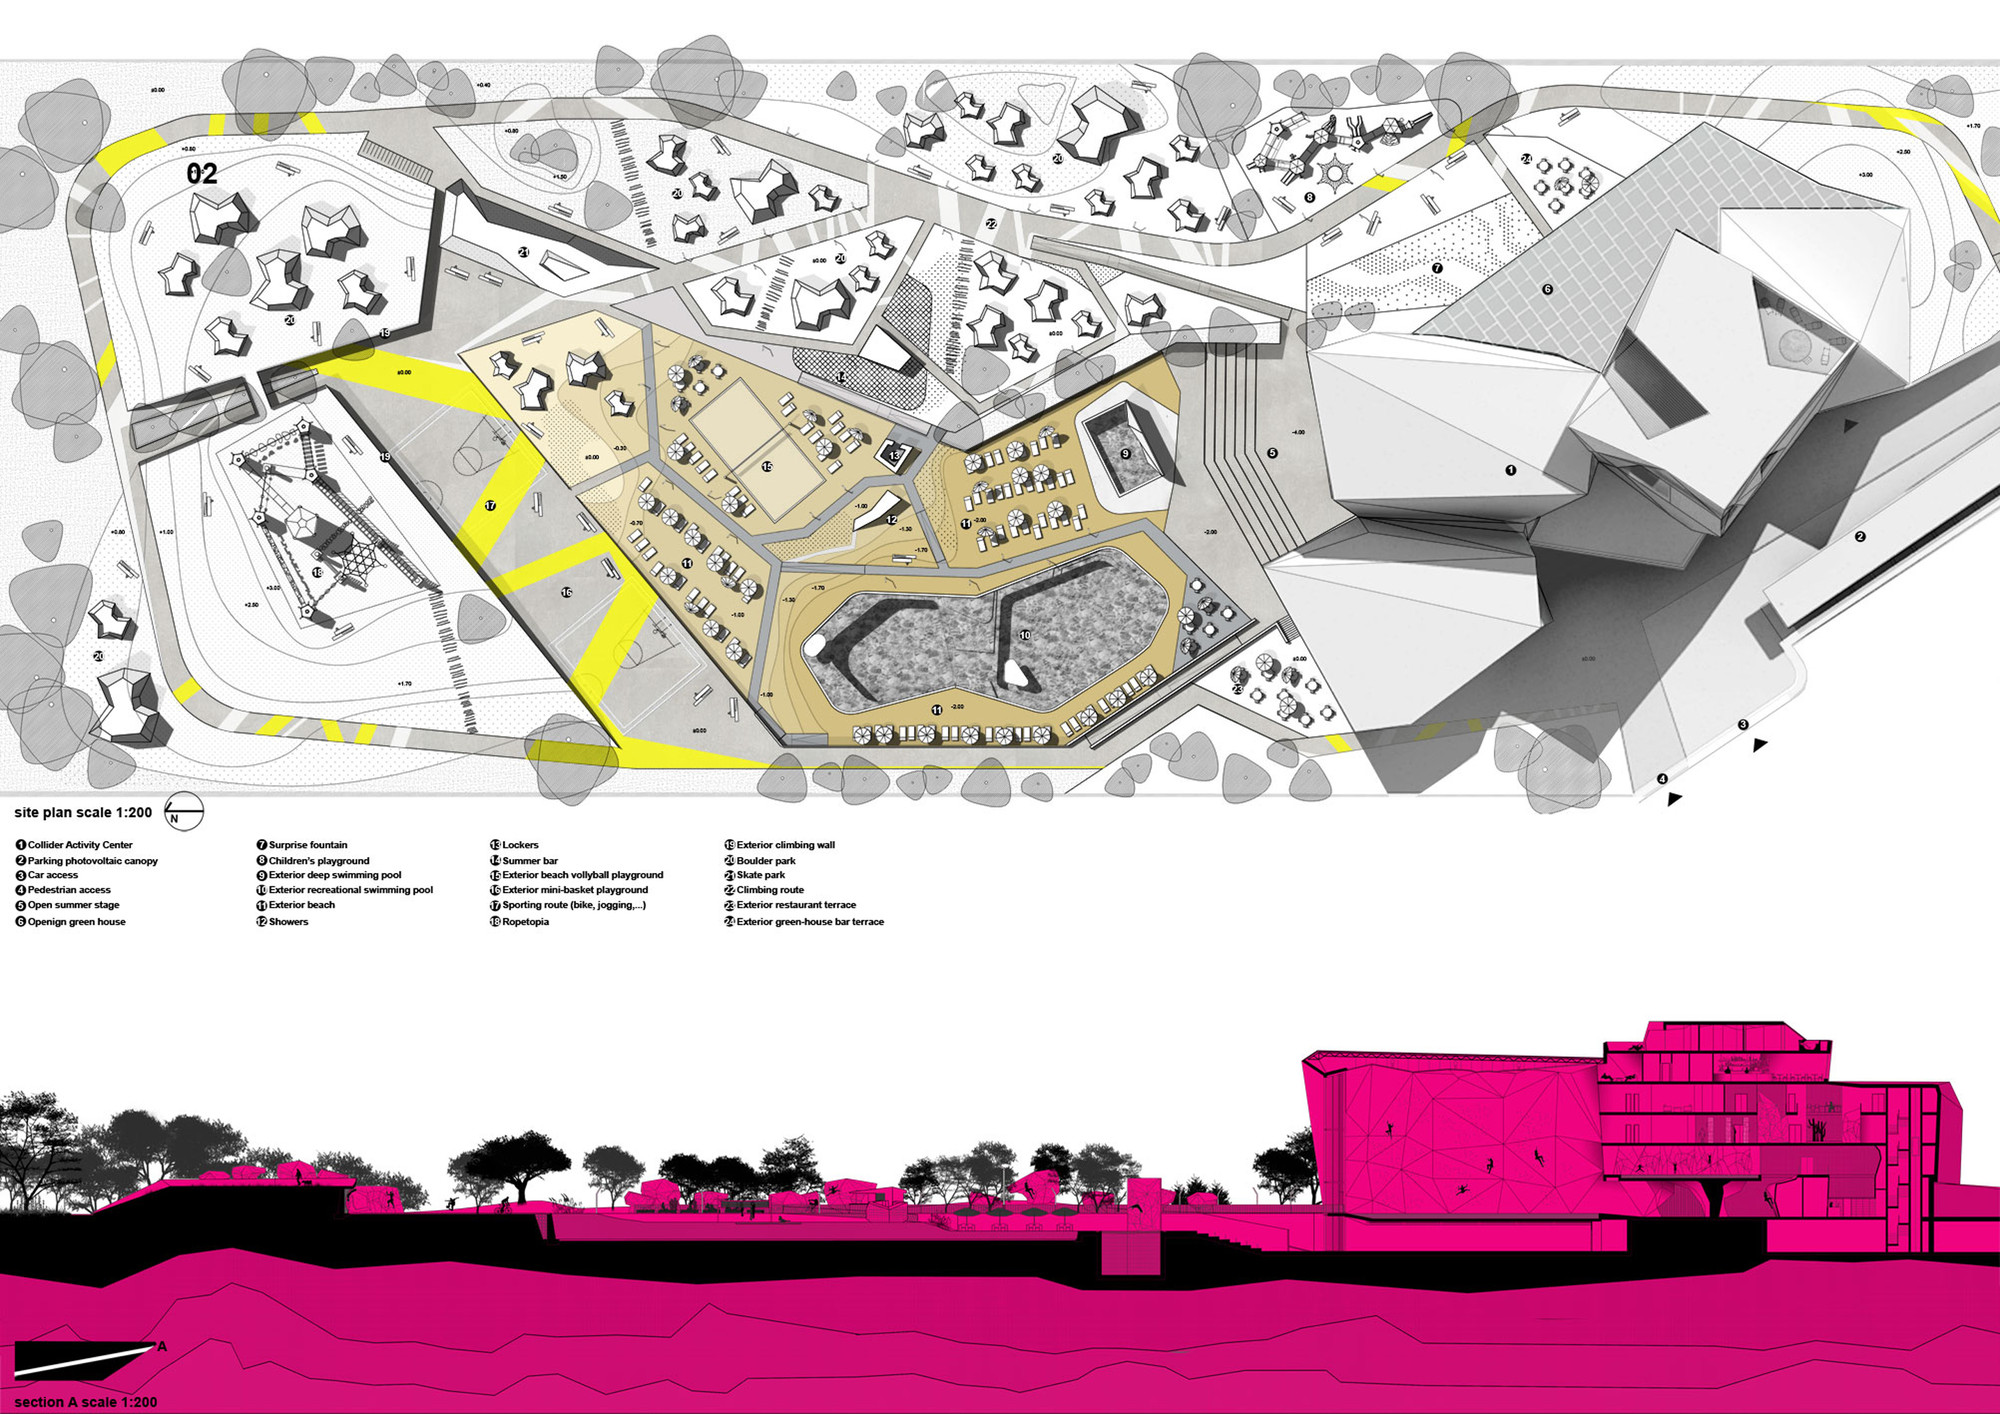 Gallery of Collider Activity Center Competition Entry STRATO 3 – How To Draw A Site Plan To Scale